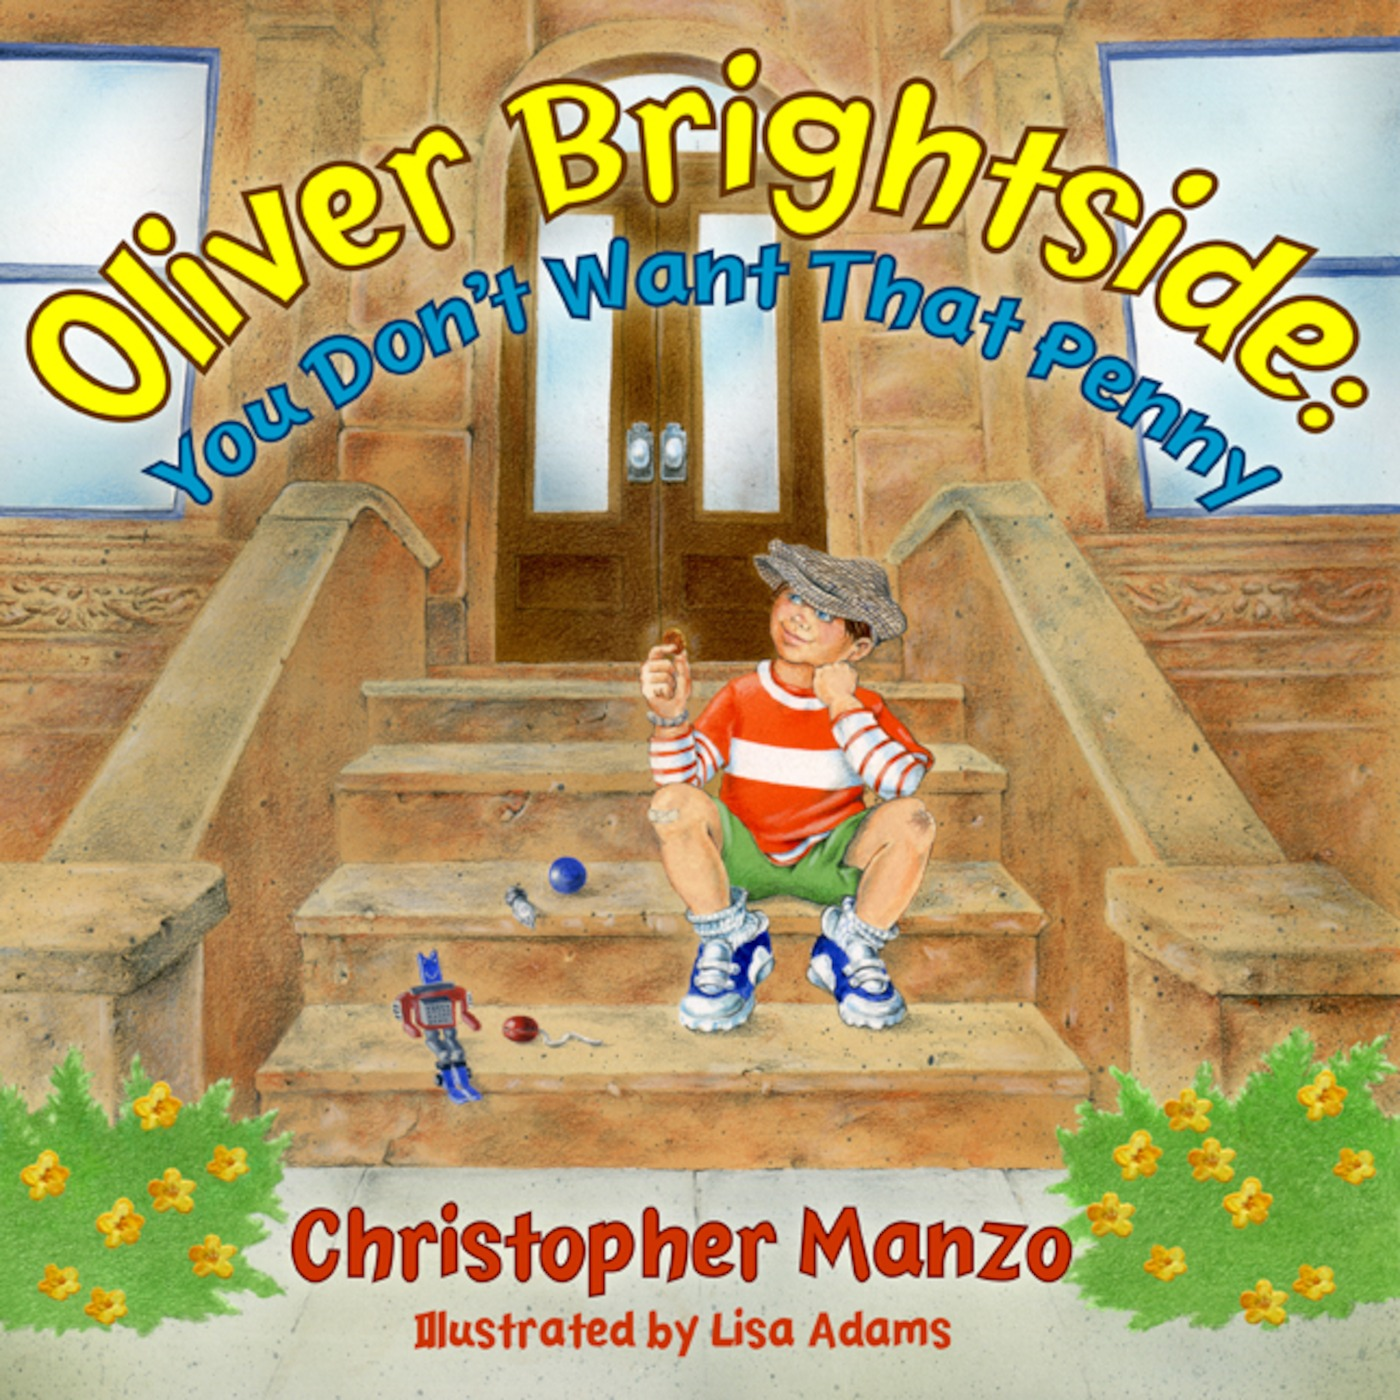 Oliver Brightside: You Don't Want That Penny by Christopher Manzo